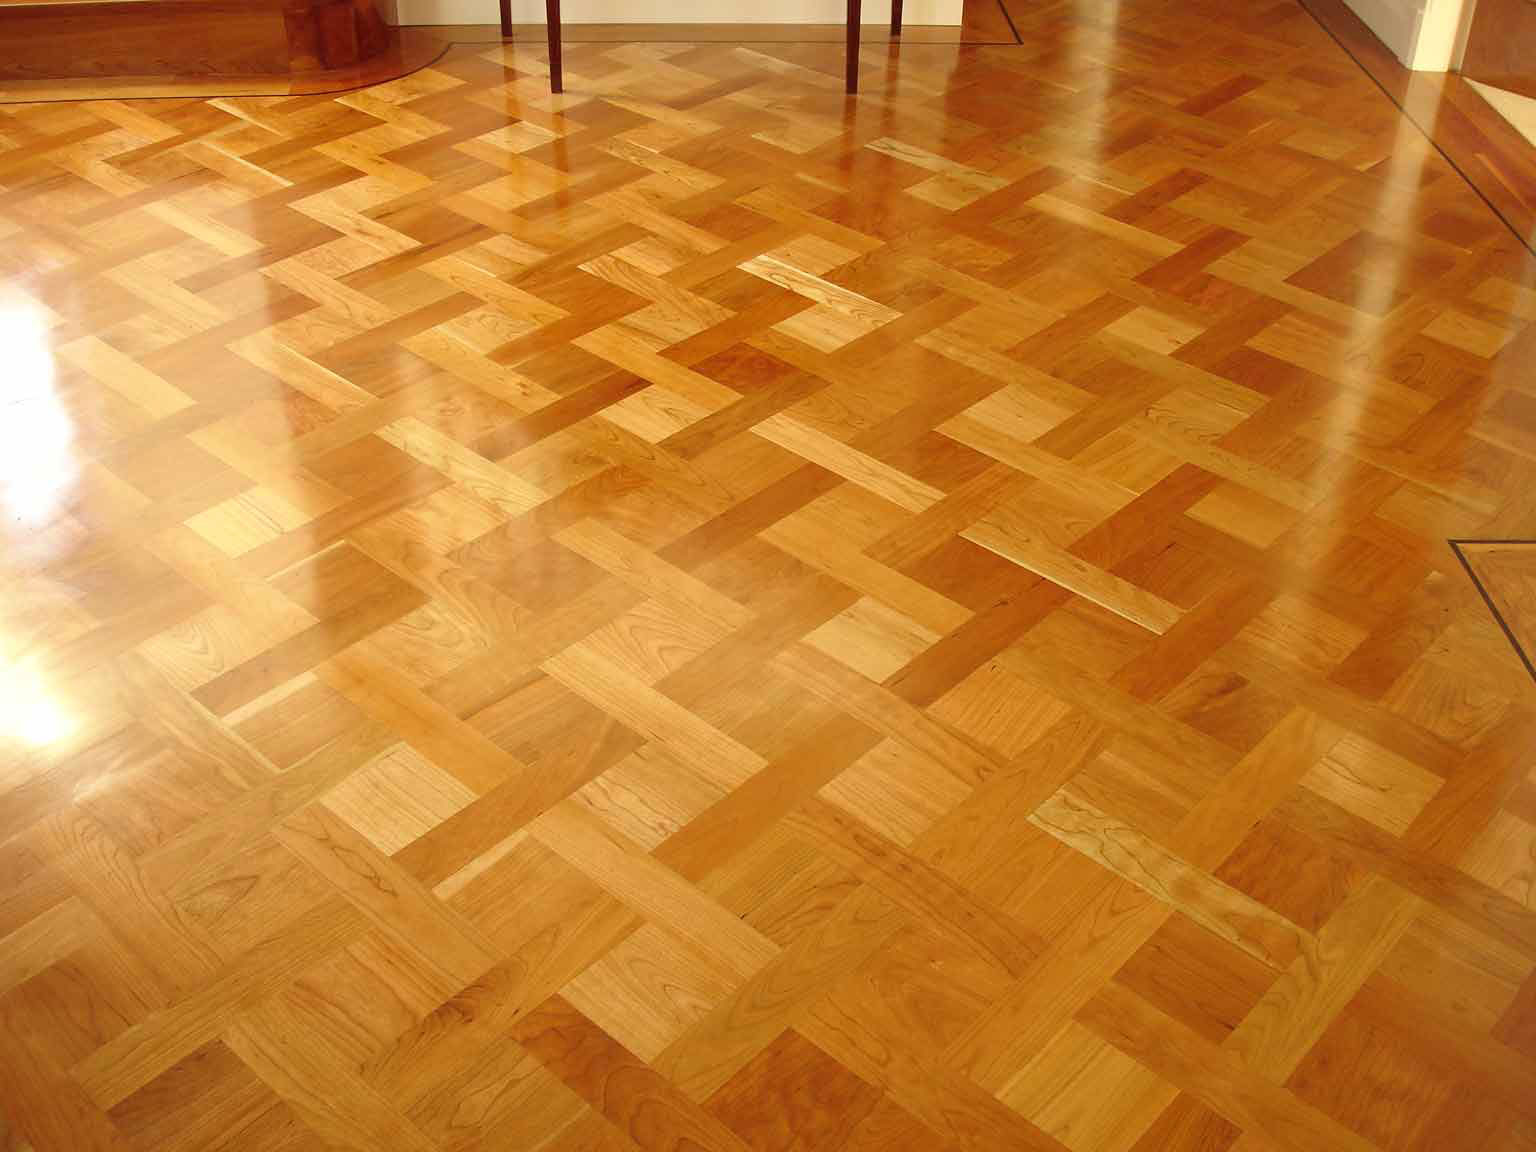 Wood flooring ideas design wood flooring ideas home trendy for Cheap wood flooring ideas